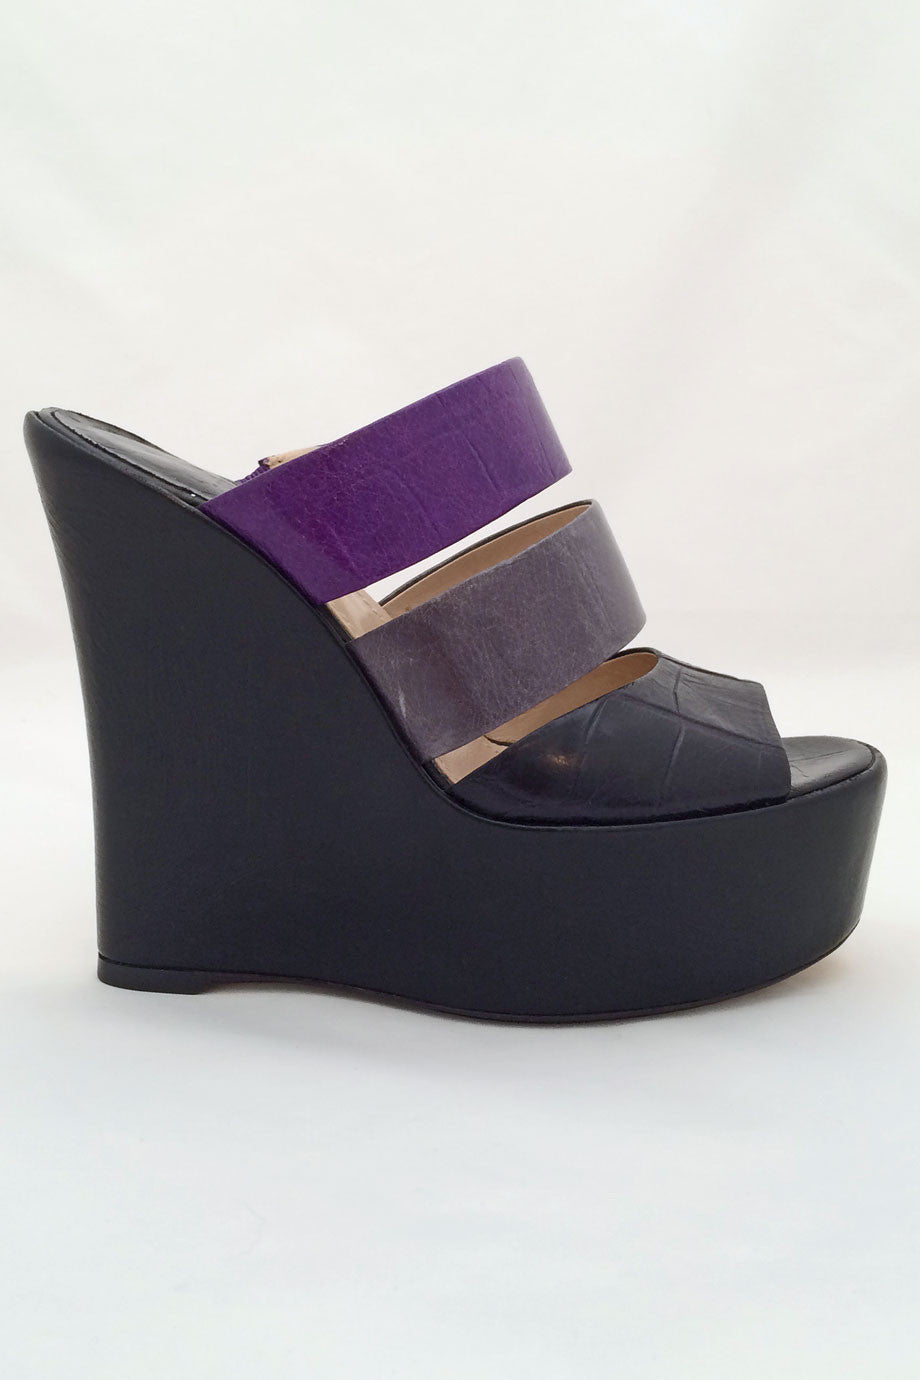 Baldan Black + Purple Croc Print Leather Wedge Slide Sandals / Sz 37 - Style Therapy  - 2